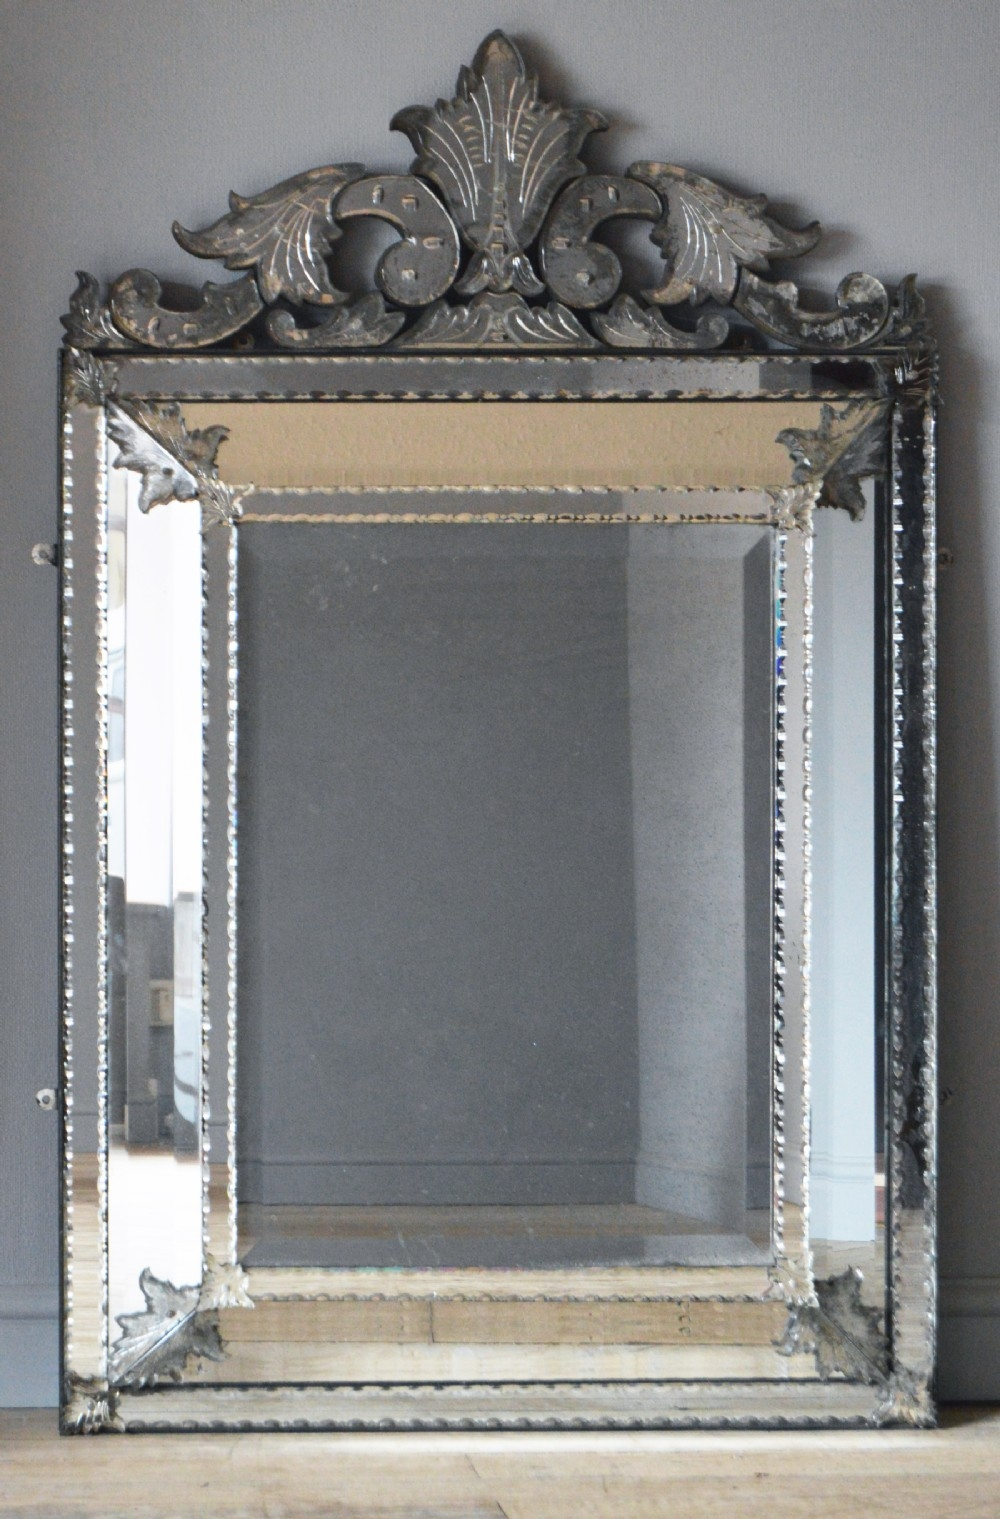 Antique Venetian Glass Mirror Regarding Venetian Antique Mirror (Image 3 of 15)